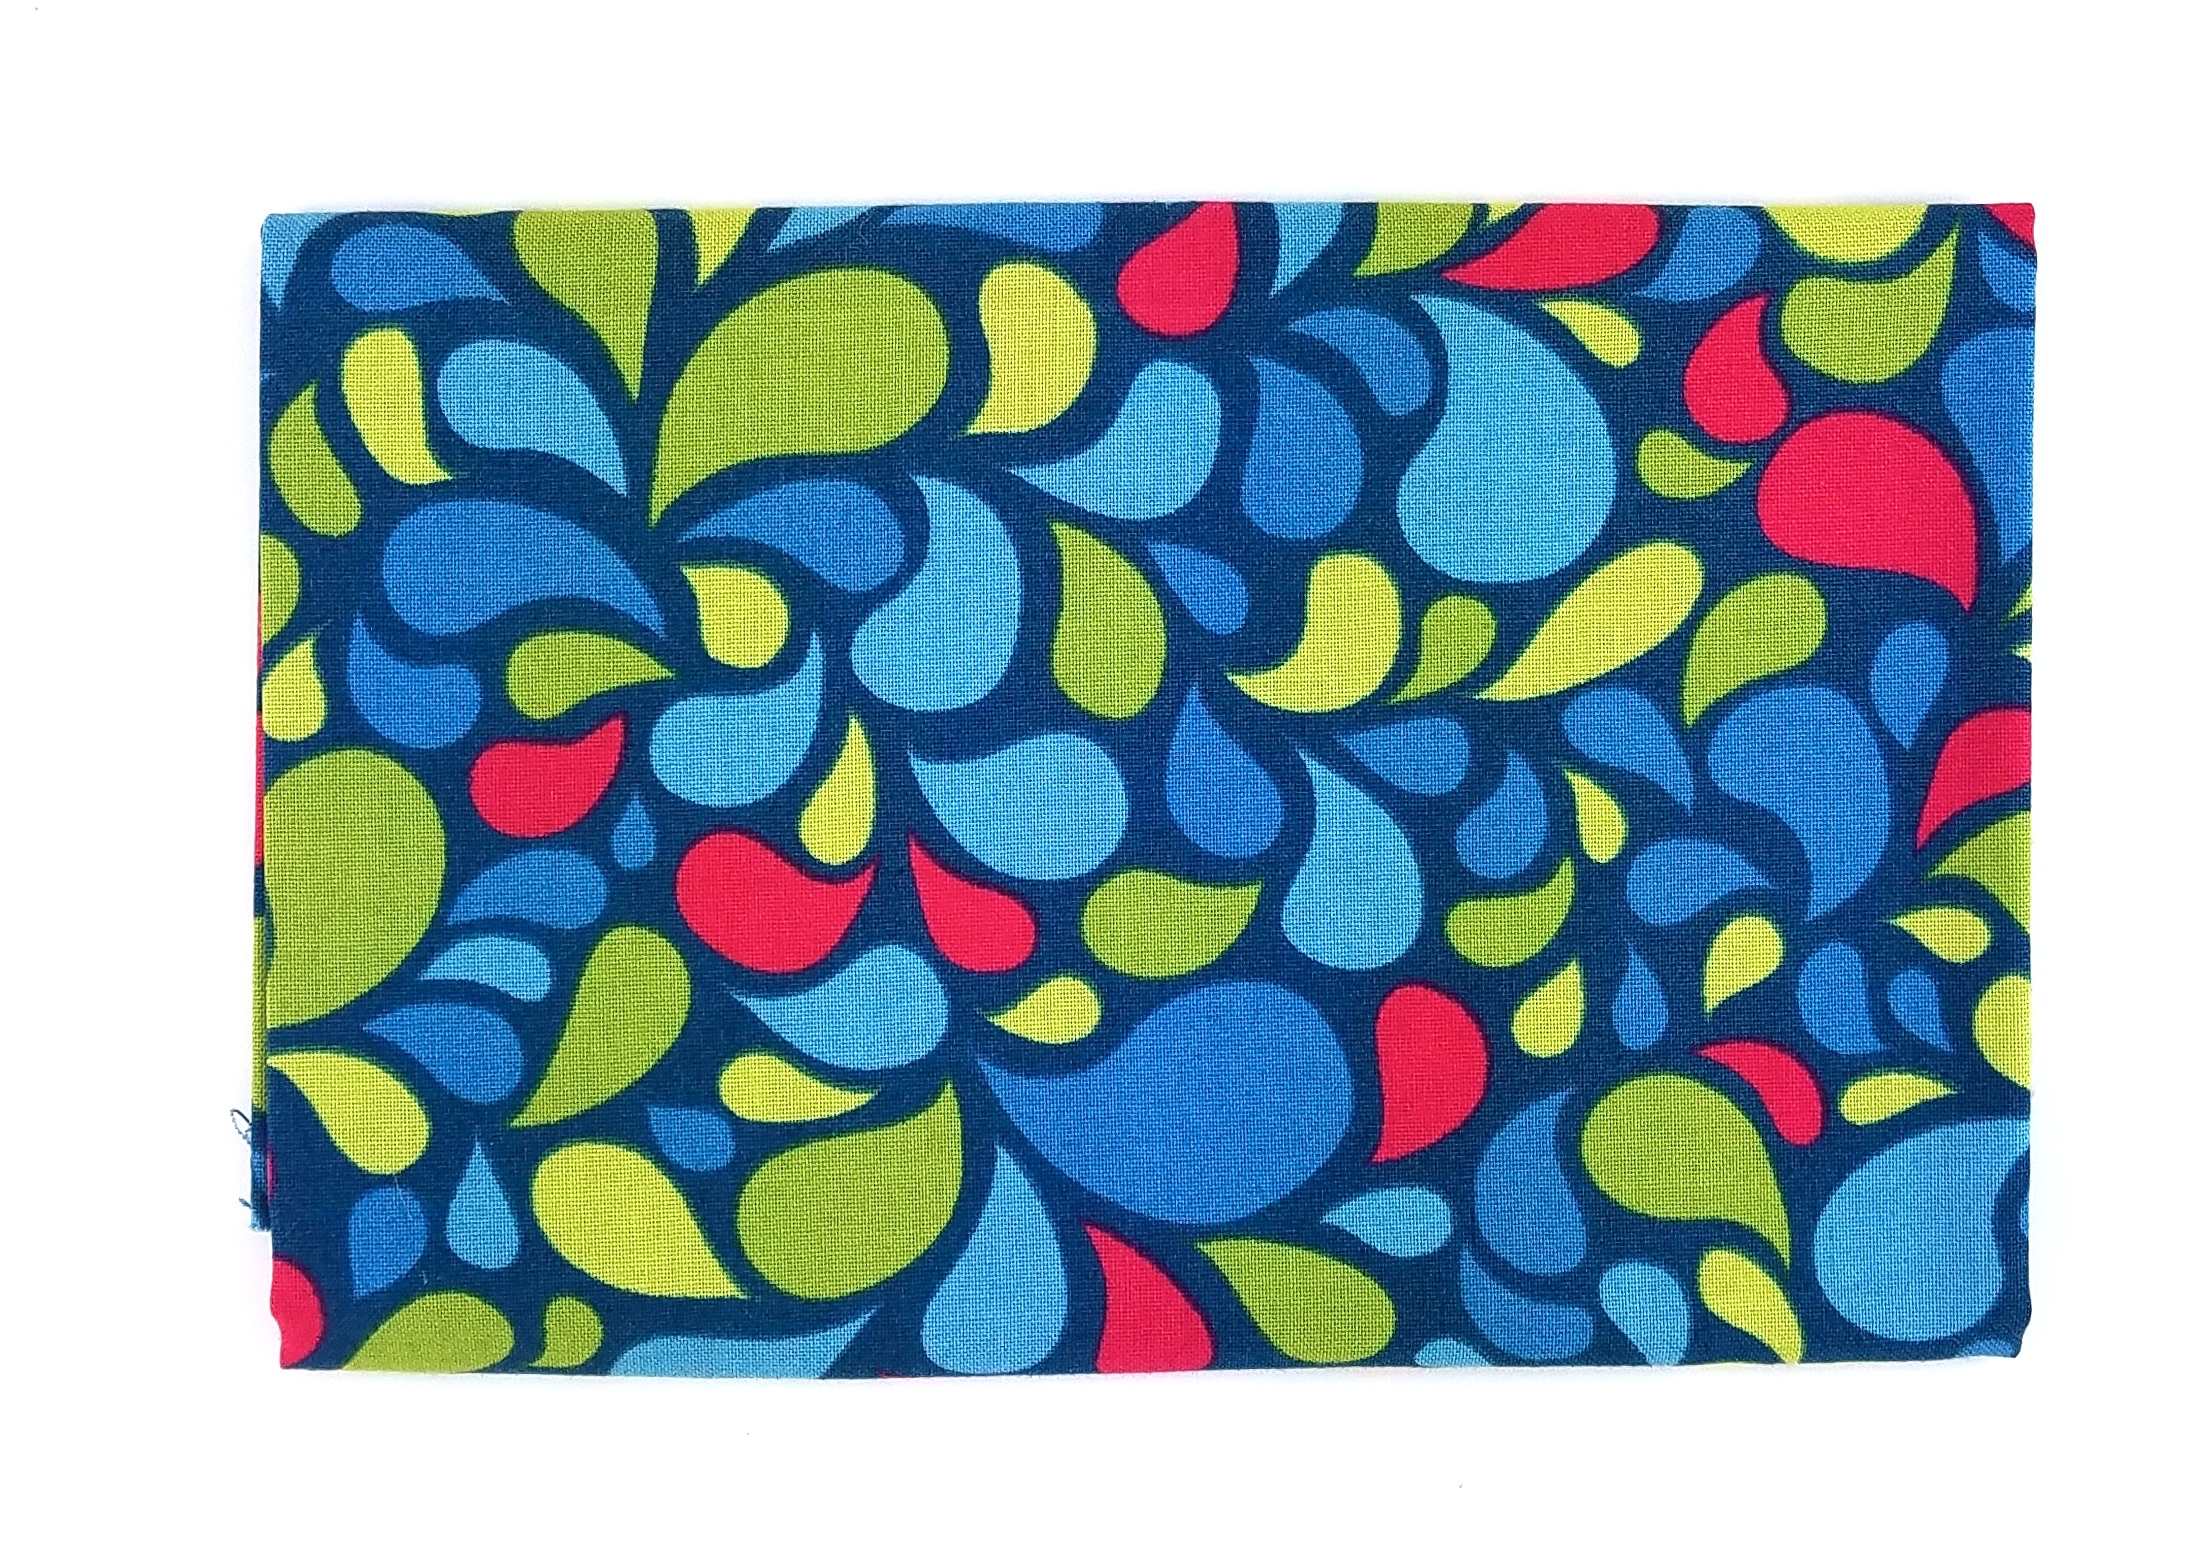 April Rosenthal, Best Day Ever, Blue Swirls, Fat Quarter, Missing 5 in x 6 in